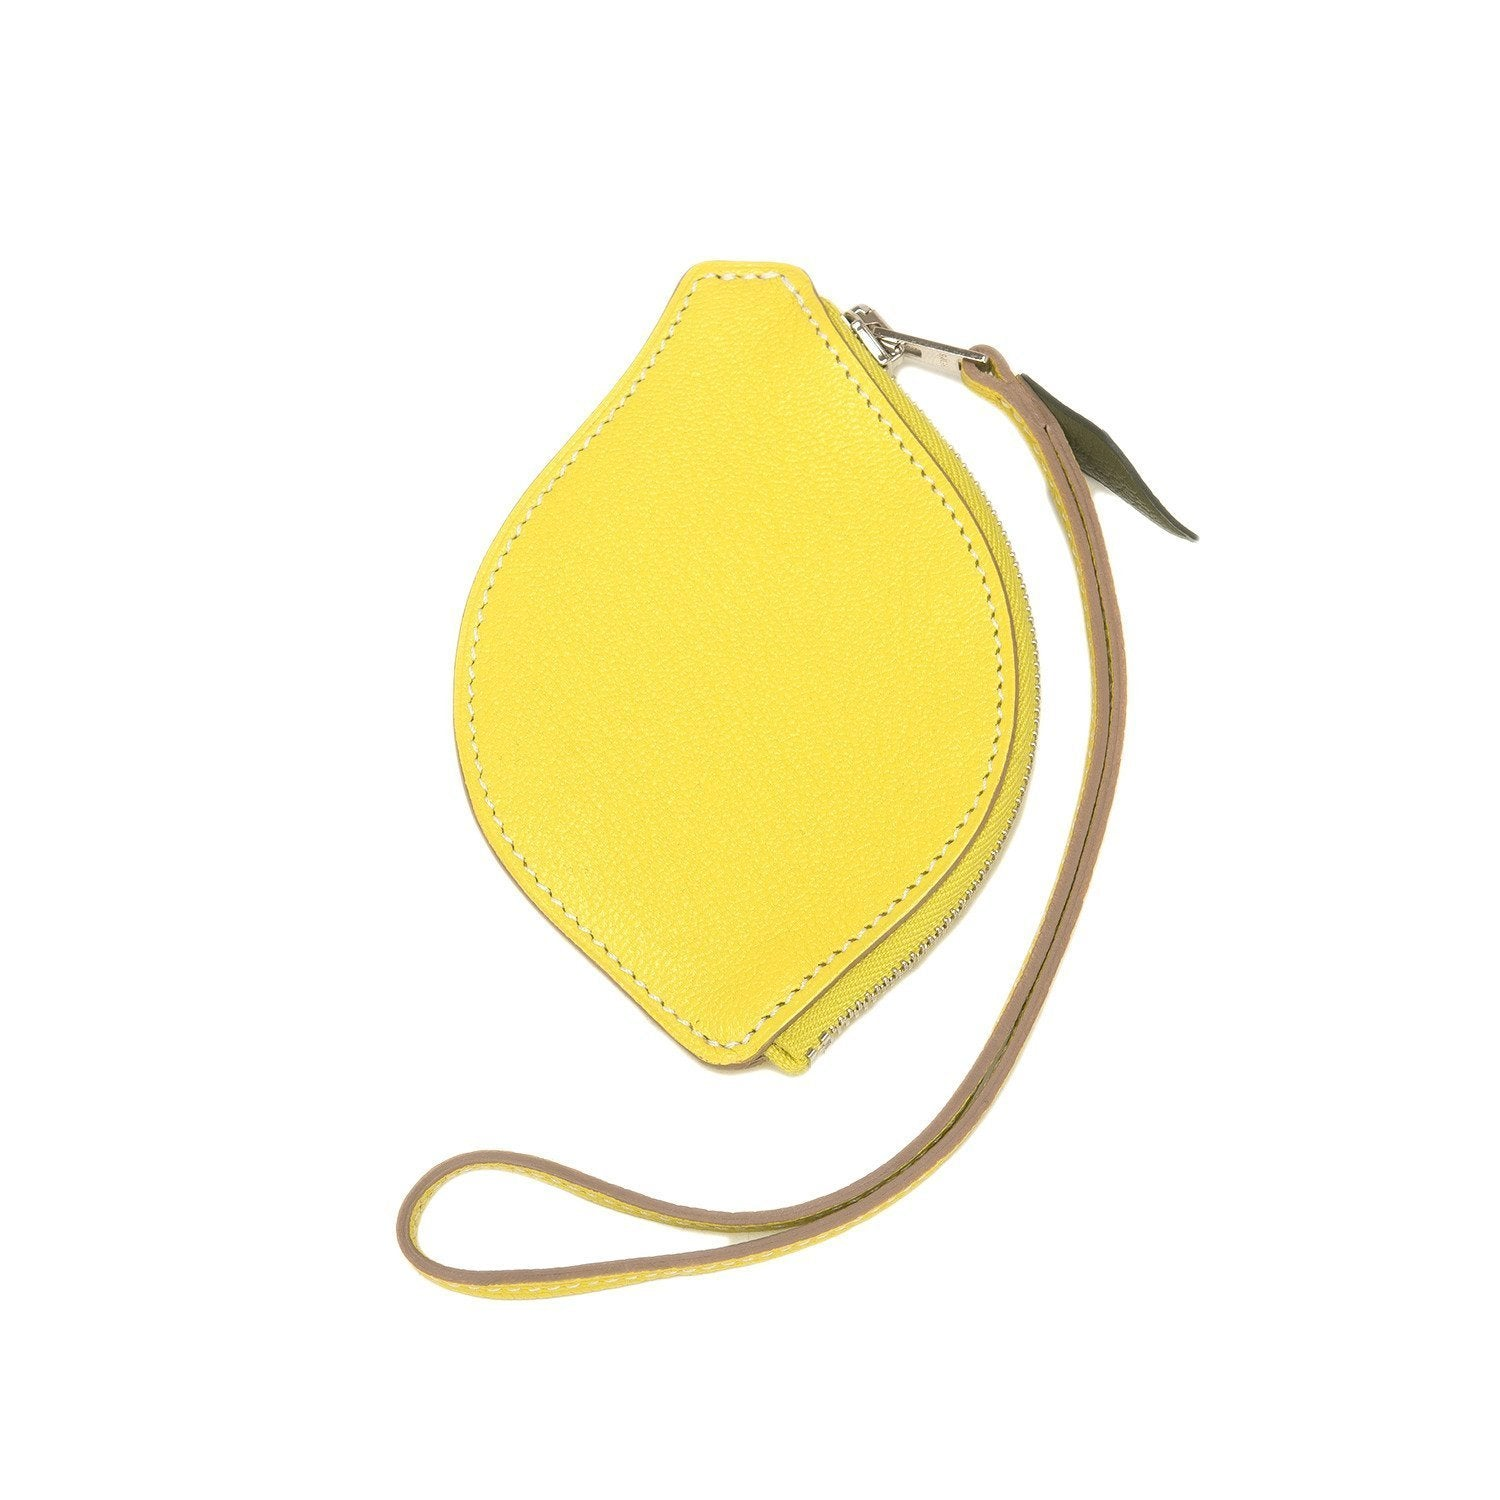 Hermes Lemon Tutti Frutti Chevre Porte Monnaie Coin Purse Accessories